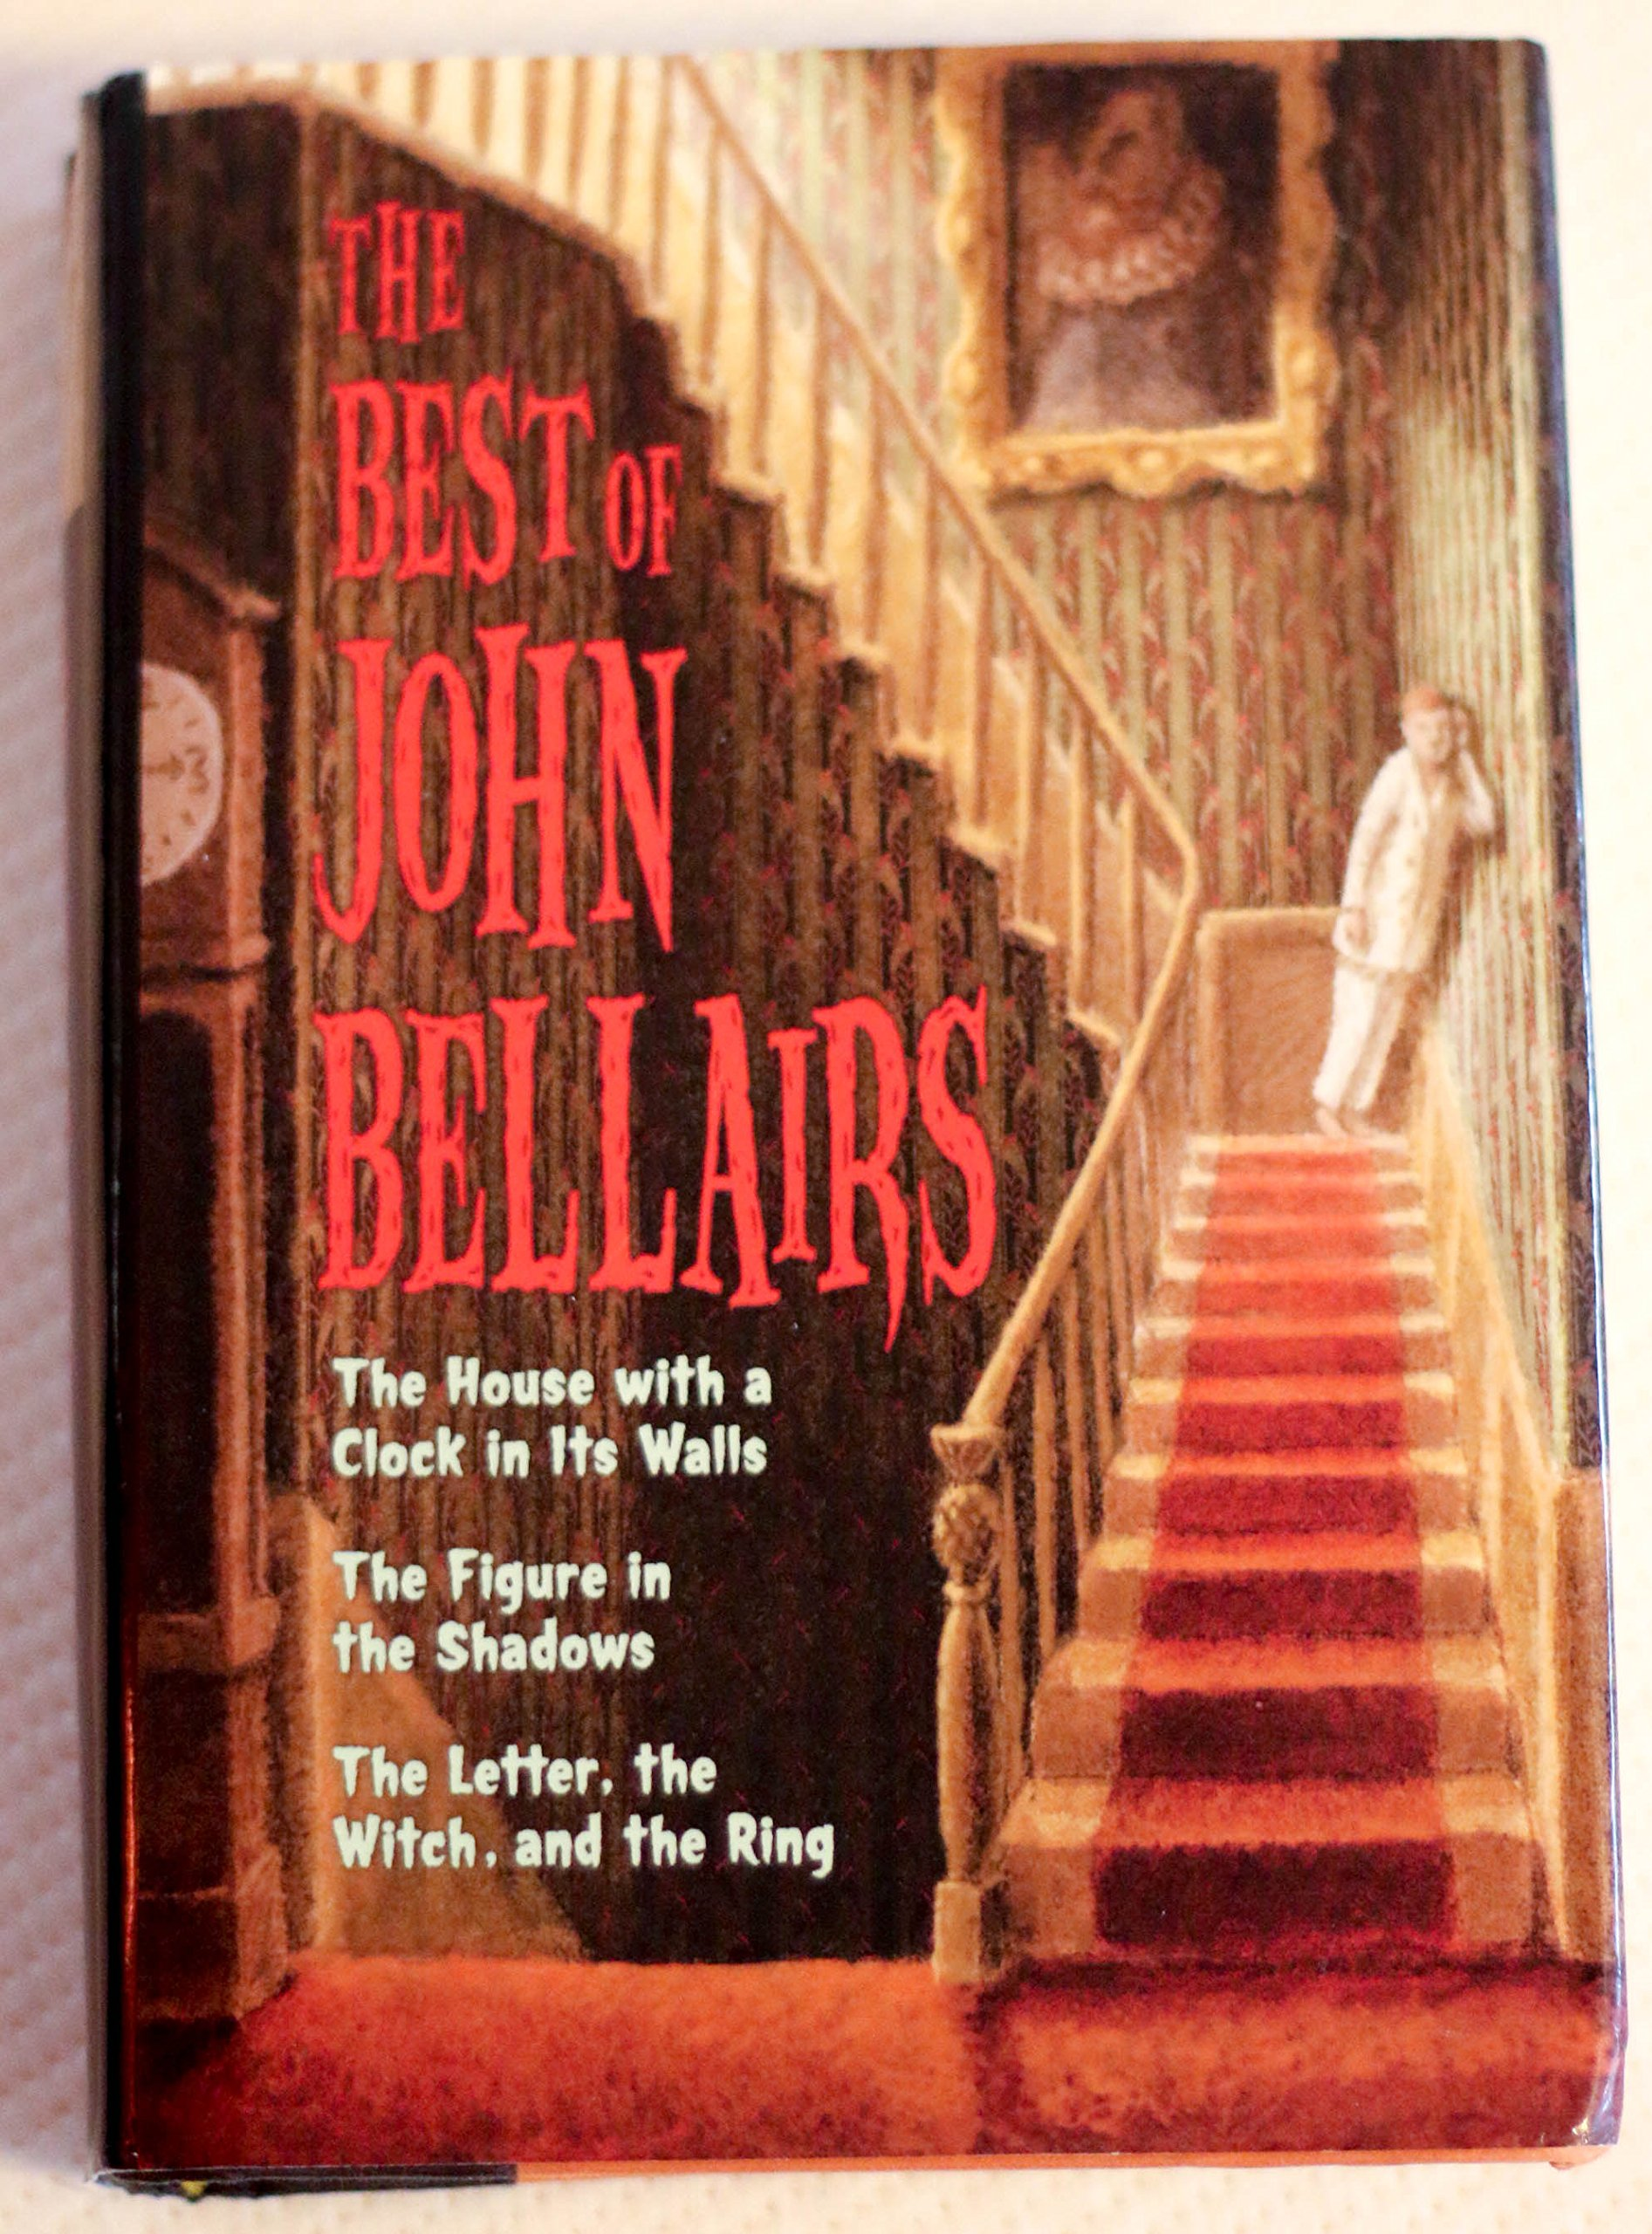 The Best of John Bellairs: The House with a Clock in Its Walls; The Figure in the Shadows; The Letter, the Witch, and the Ring by Barnes & Noble Books (Image #2)